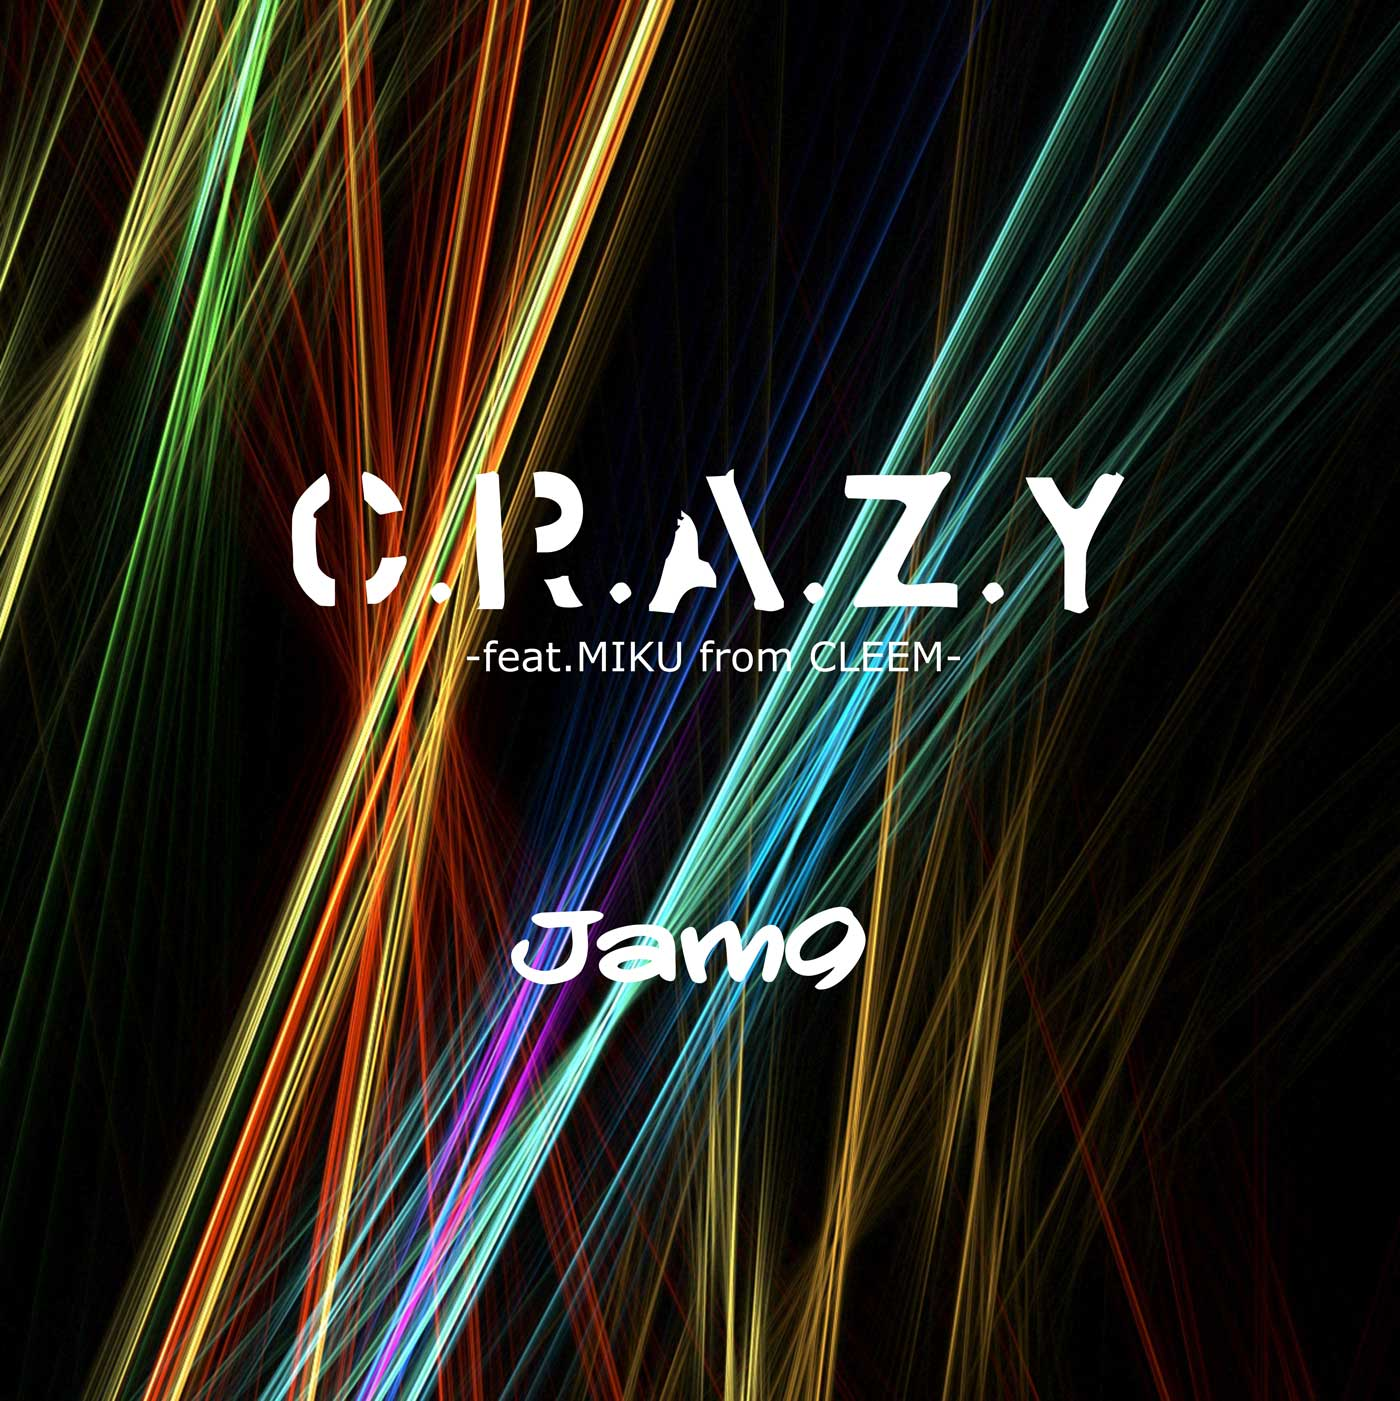 C.R.A.Z.Y-feat.MIKU from CLEEM-